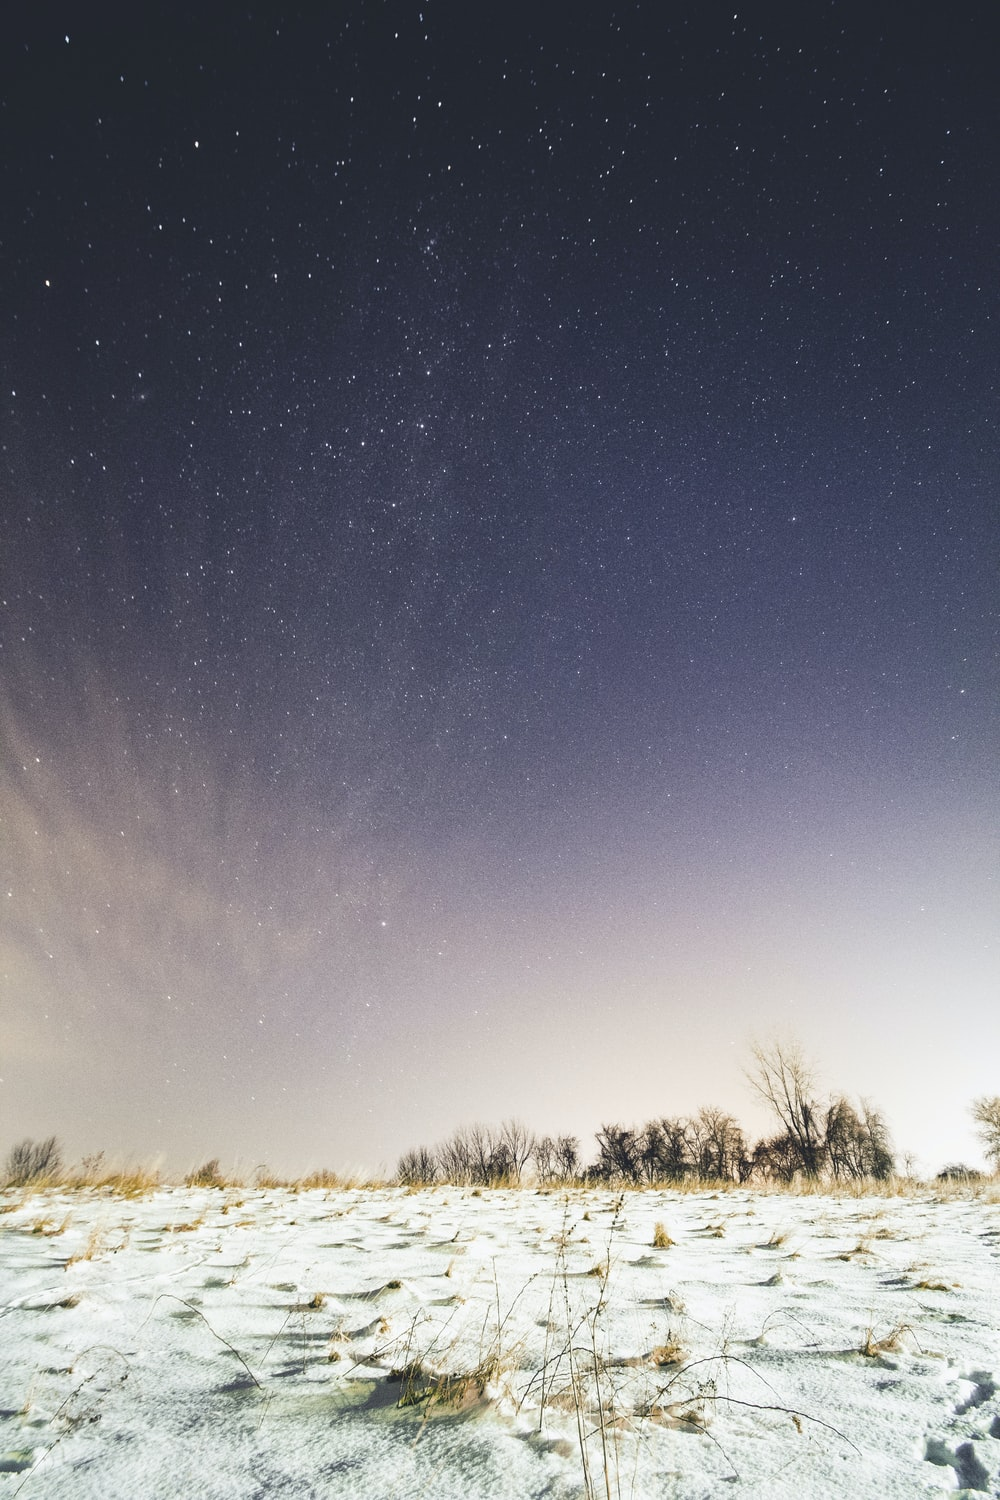 snow-covered ground under sky full of stars